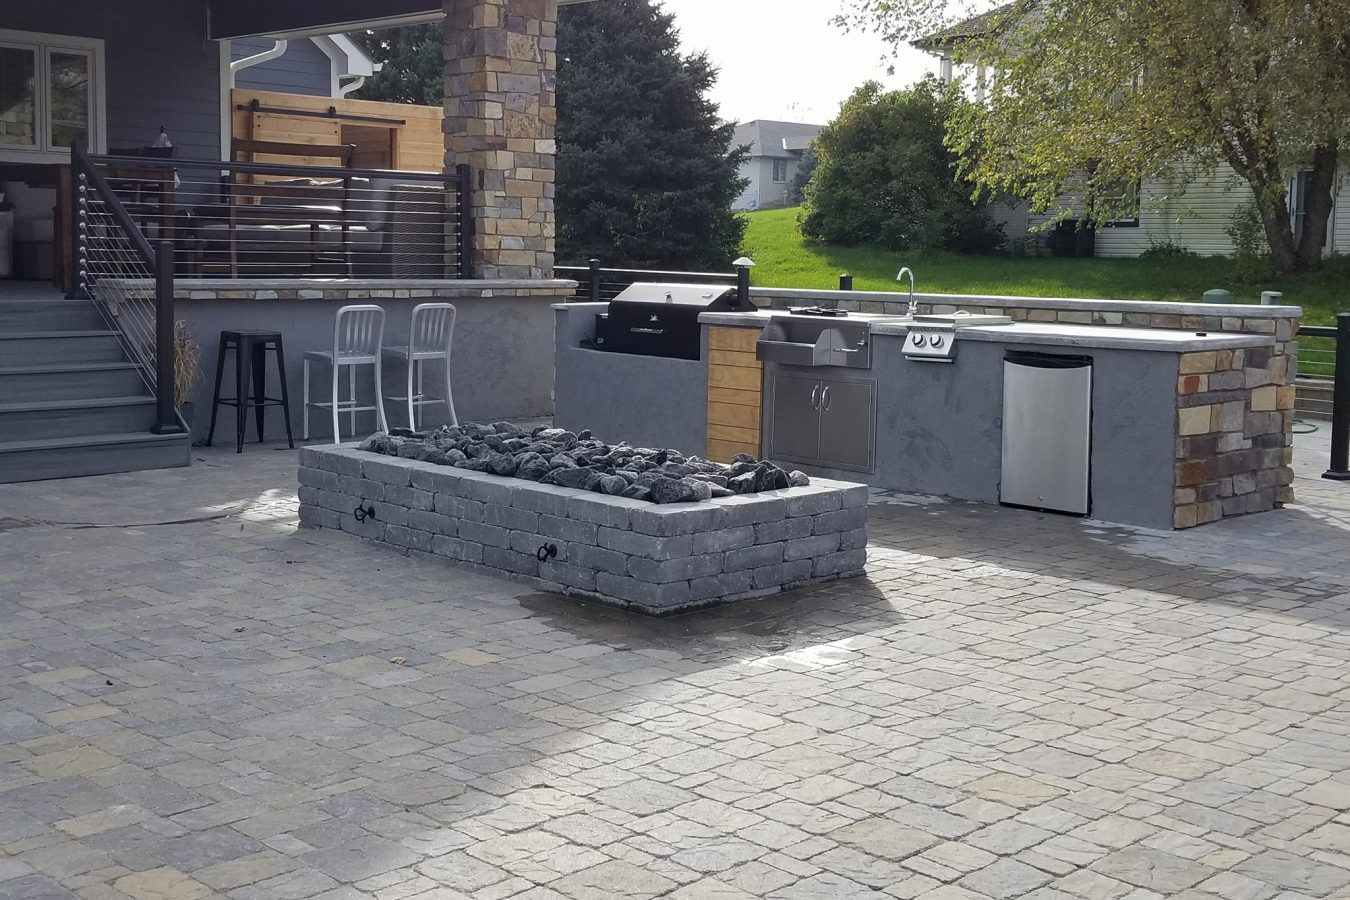 Outdoor-kitchen-sink-grill-fire-pit-patio-refrigerator